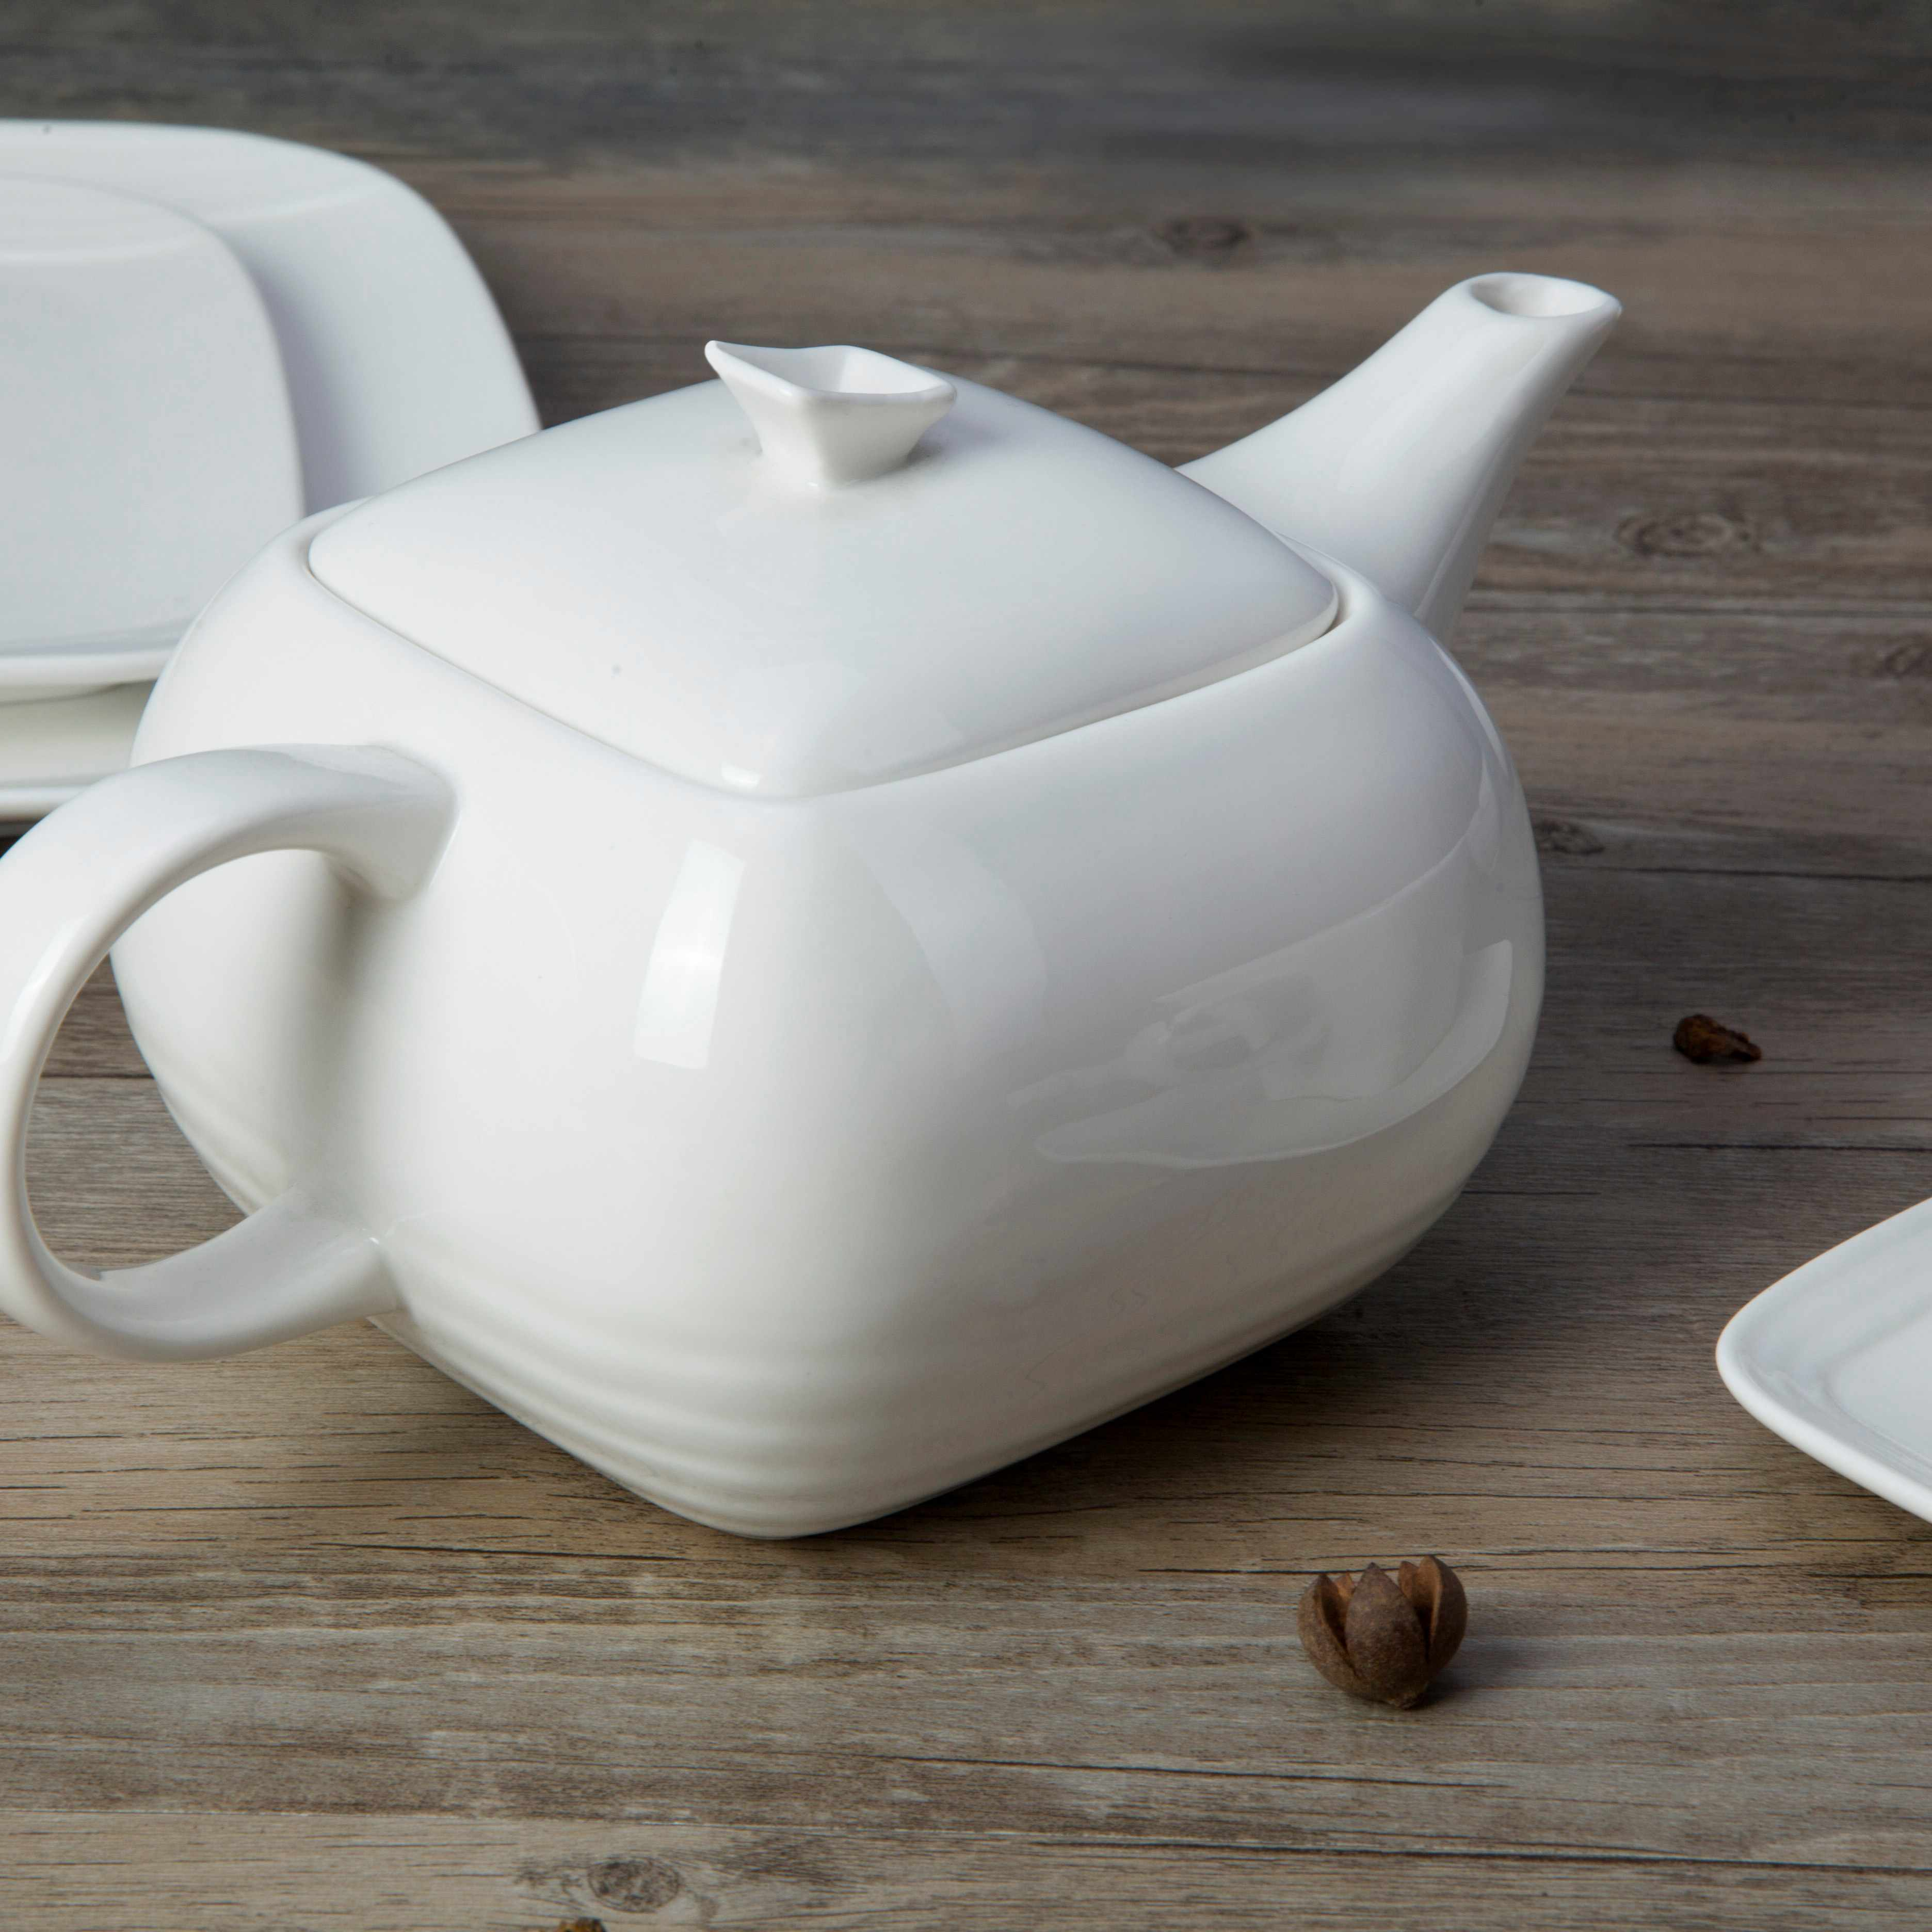 canadian gmo apples approved for sale - warriorforum.com  -  english bone china tea sets for sale